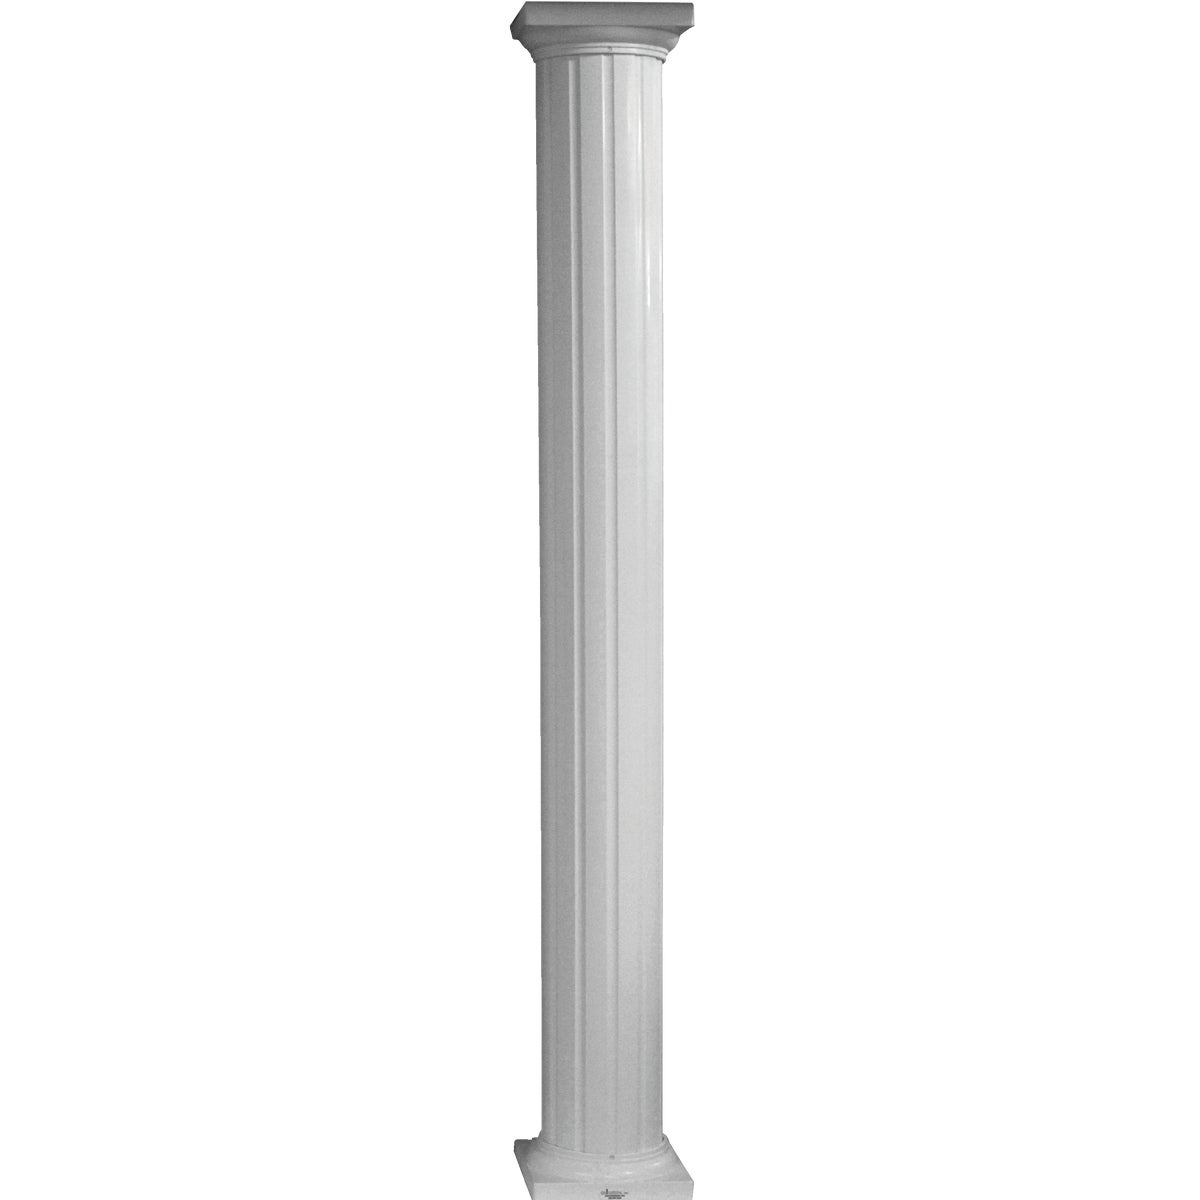 "6""X8' COLUMN RND ALUM - RD0608WHT by DIXIE PACIFIC"